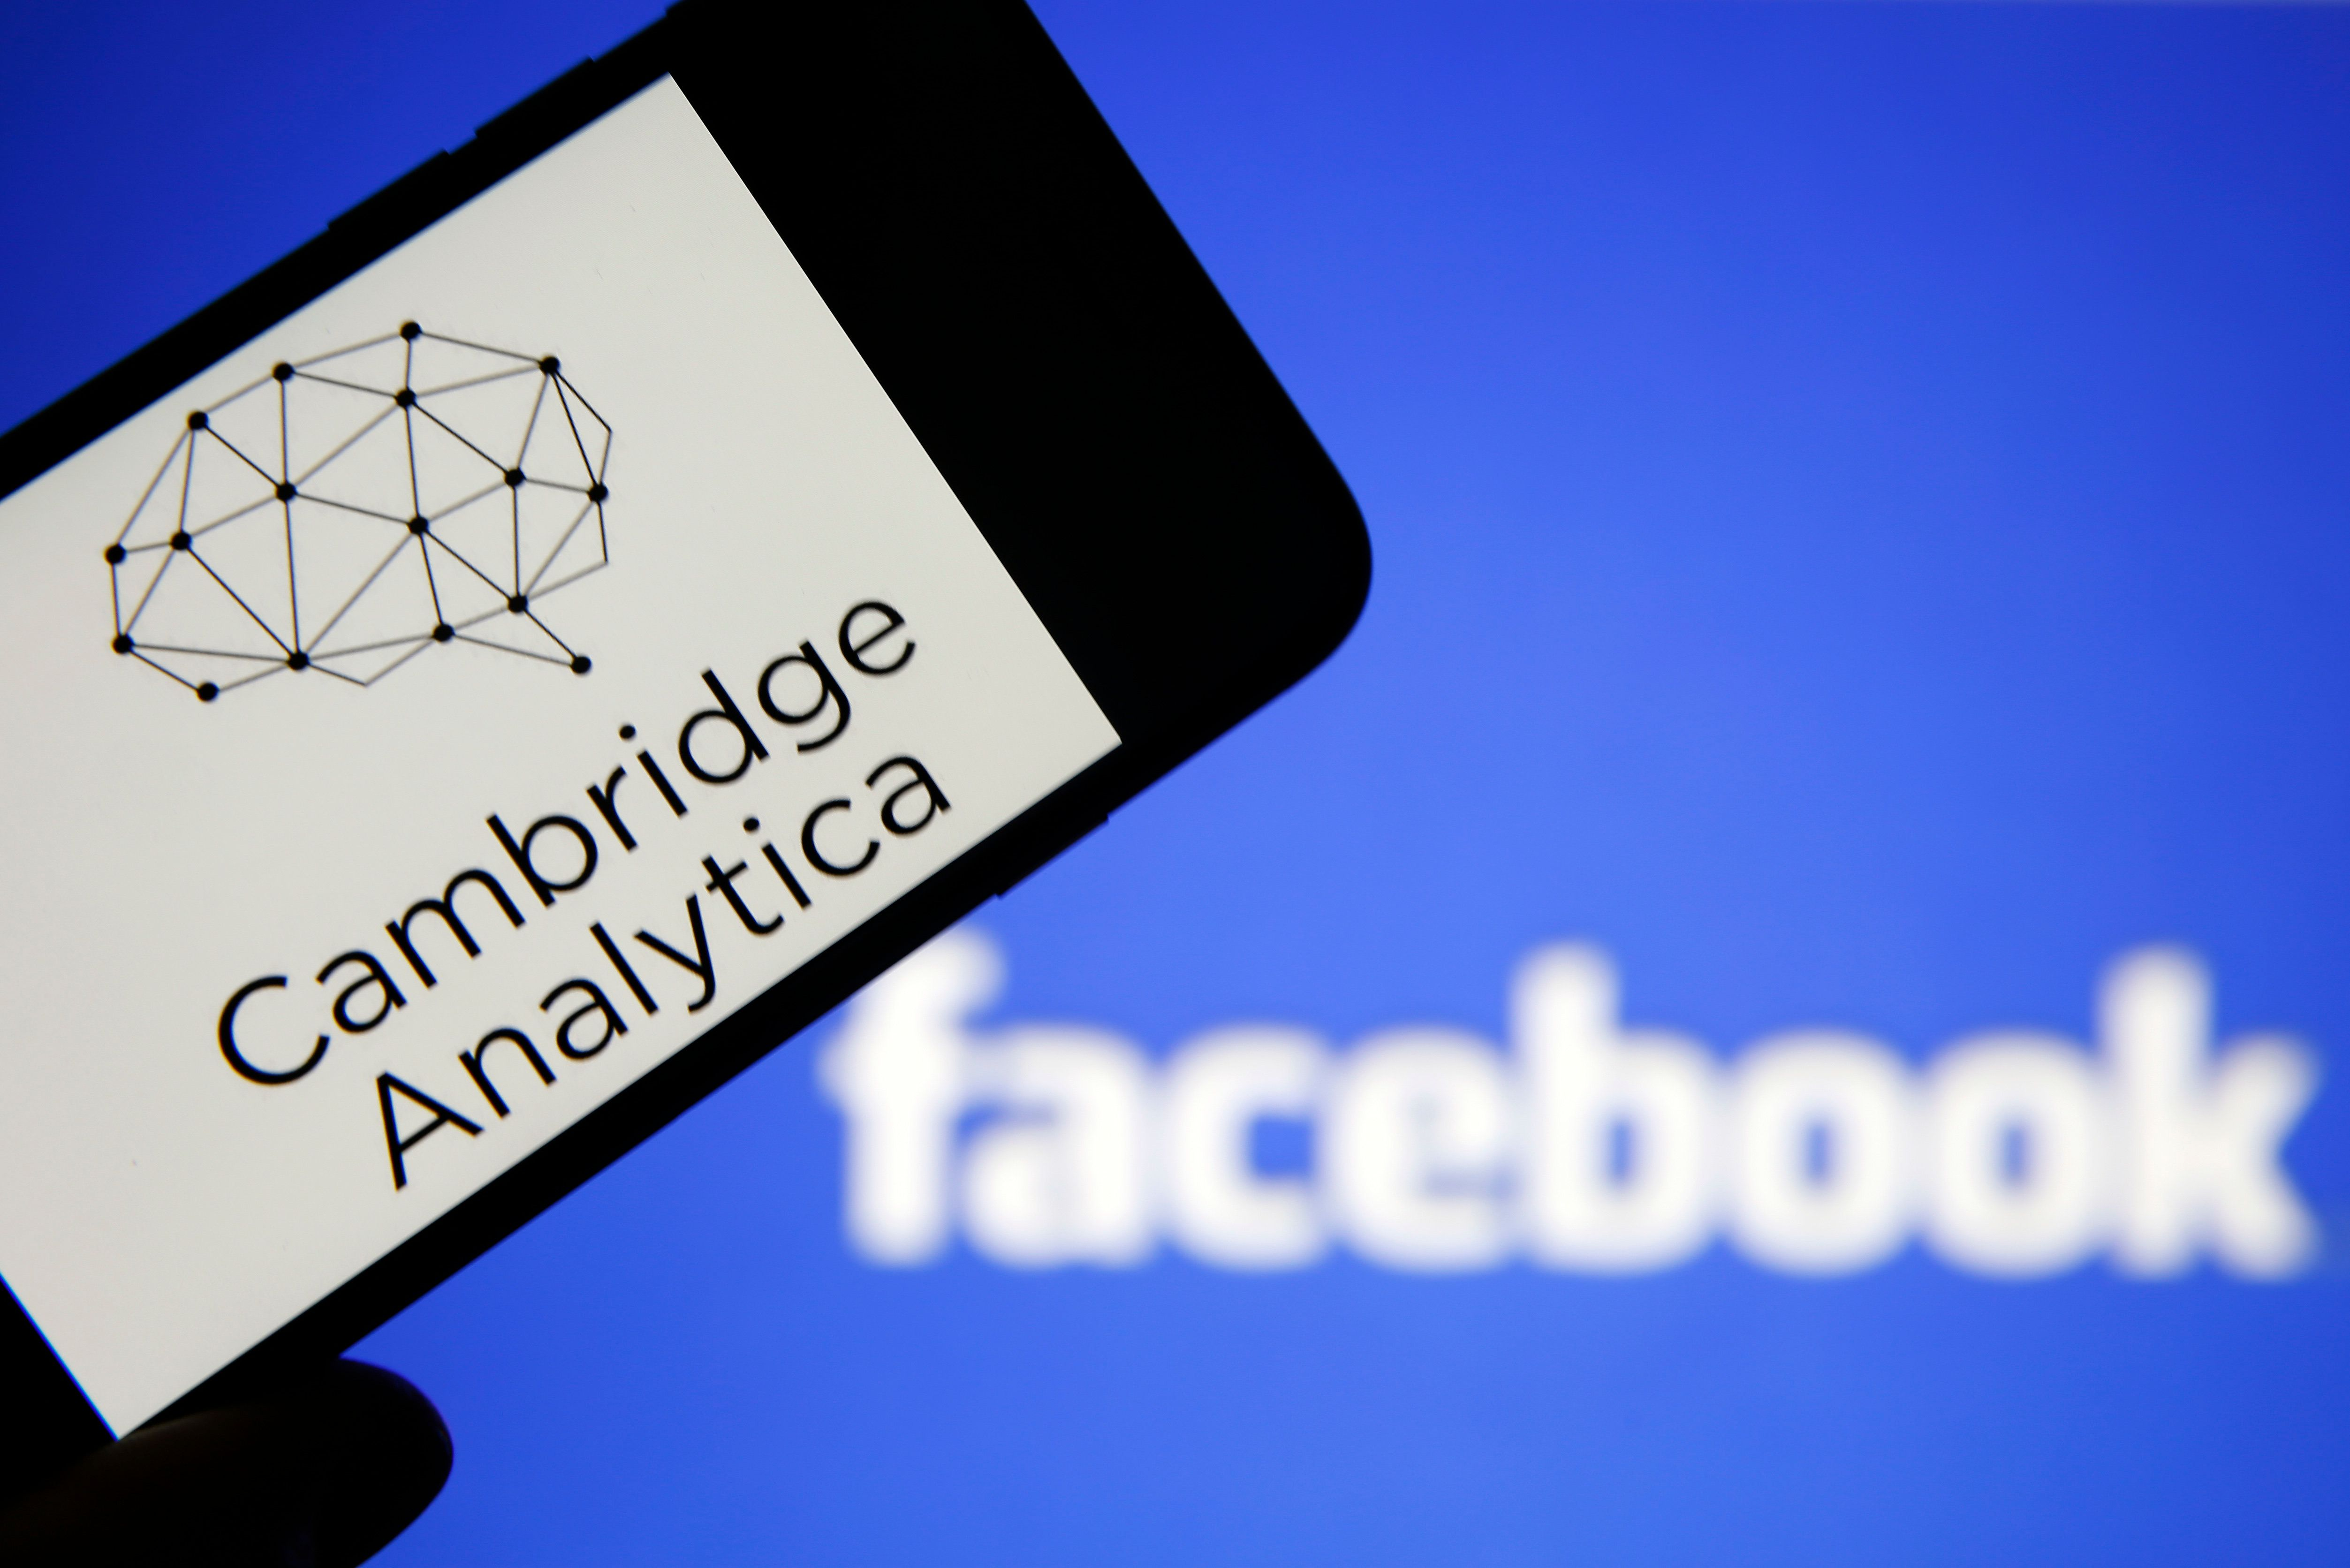 PARIS, FRANCE - MARCH 20:  In this photo illustration the logo of the strategic communication company 'Cambridge Analytica' is seen on the screen of an iPhone in front of a computer screen showing a Facebook logo on March 20, 2018 in Paris, France. Cambridge Analytica is accused of collecting the personal information of 50 million users of the Facebook social network without their consent and would have used it to develop software to predict and influence voter voting during the campaign American election according to the New York Times and the Guardian. Facebook share price fell by more than 5% Monday shortly after the opening of Wall Street.  (Photo Illustration by Chesnot/Getty Images)